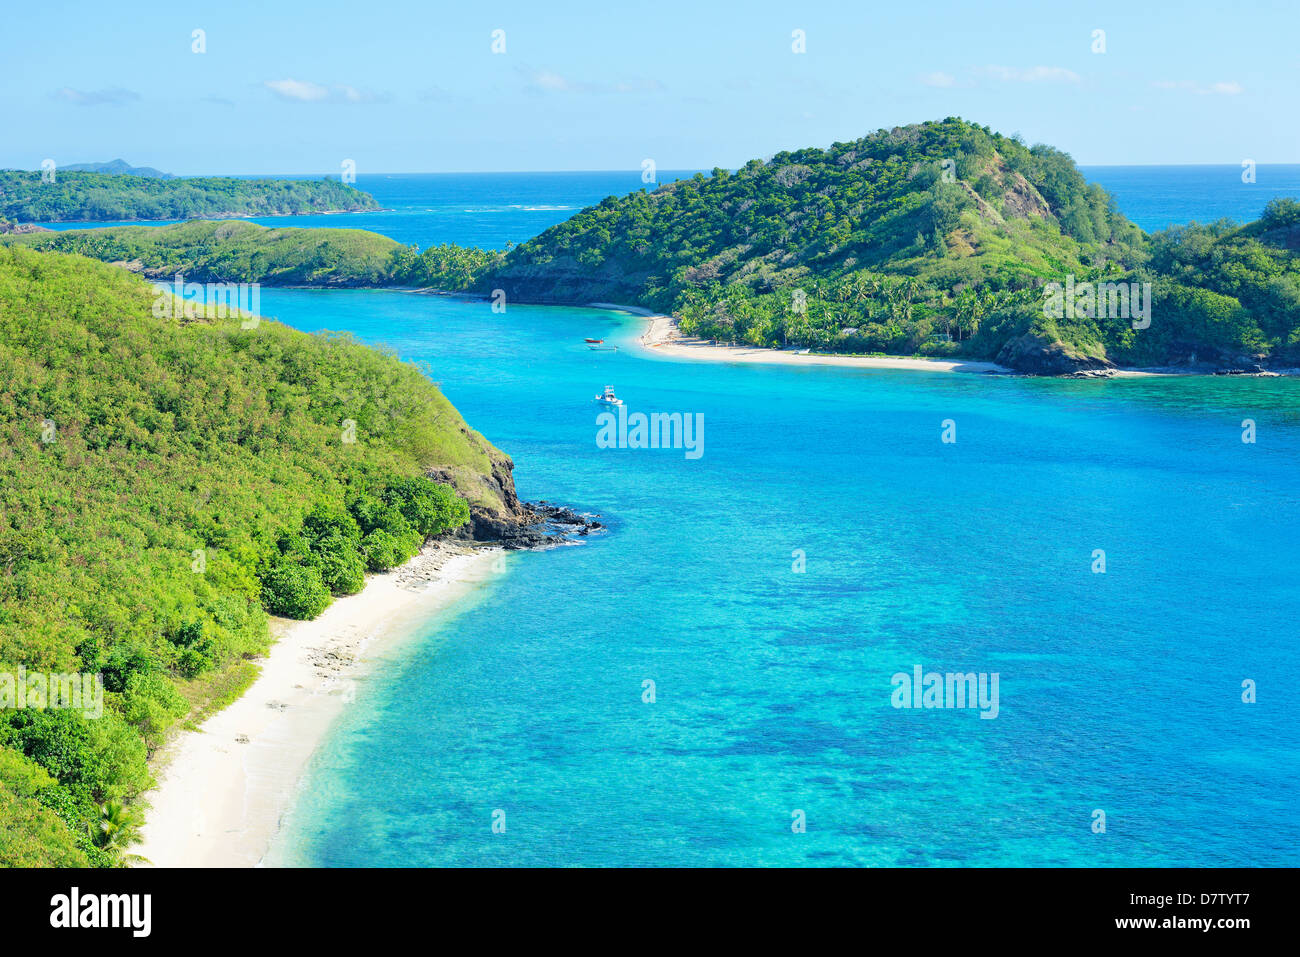 Drawaqa Island, Yasawa island group, Fiji, South Pacific islands - Stock Image